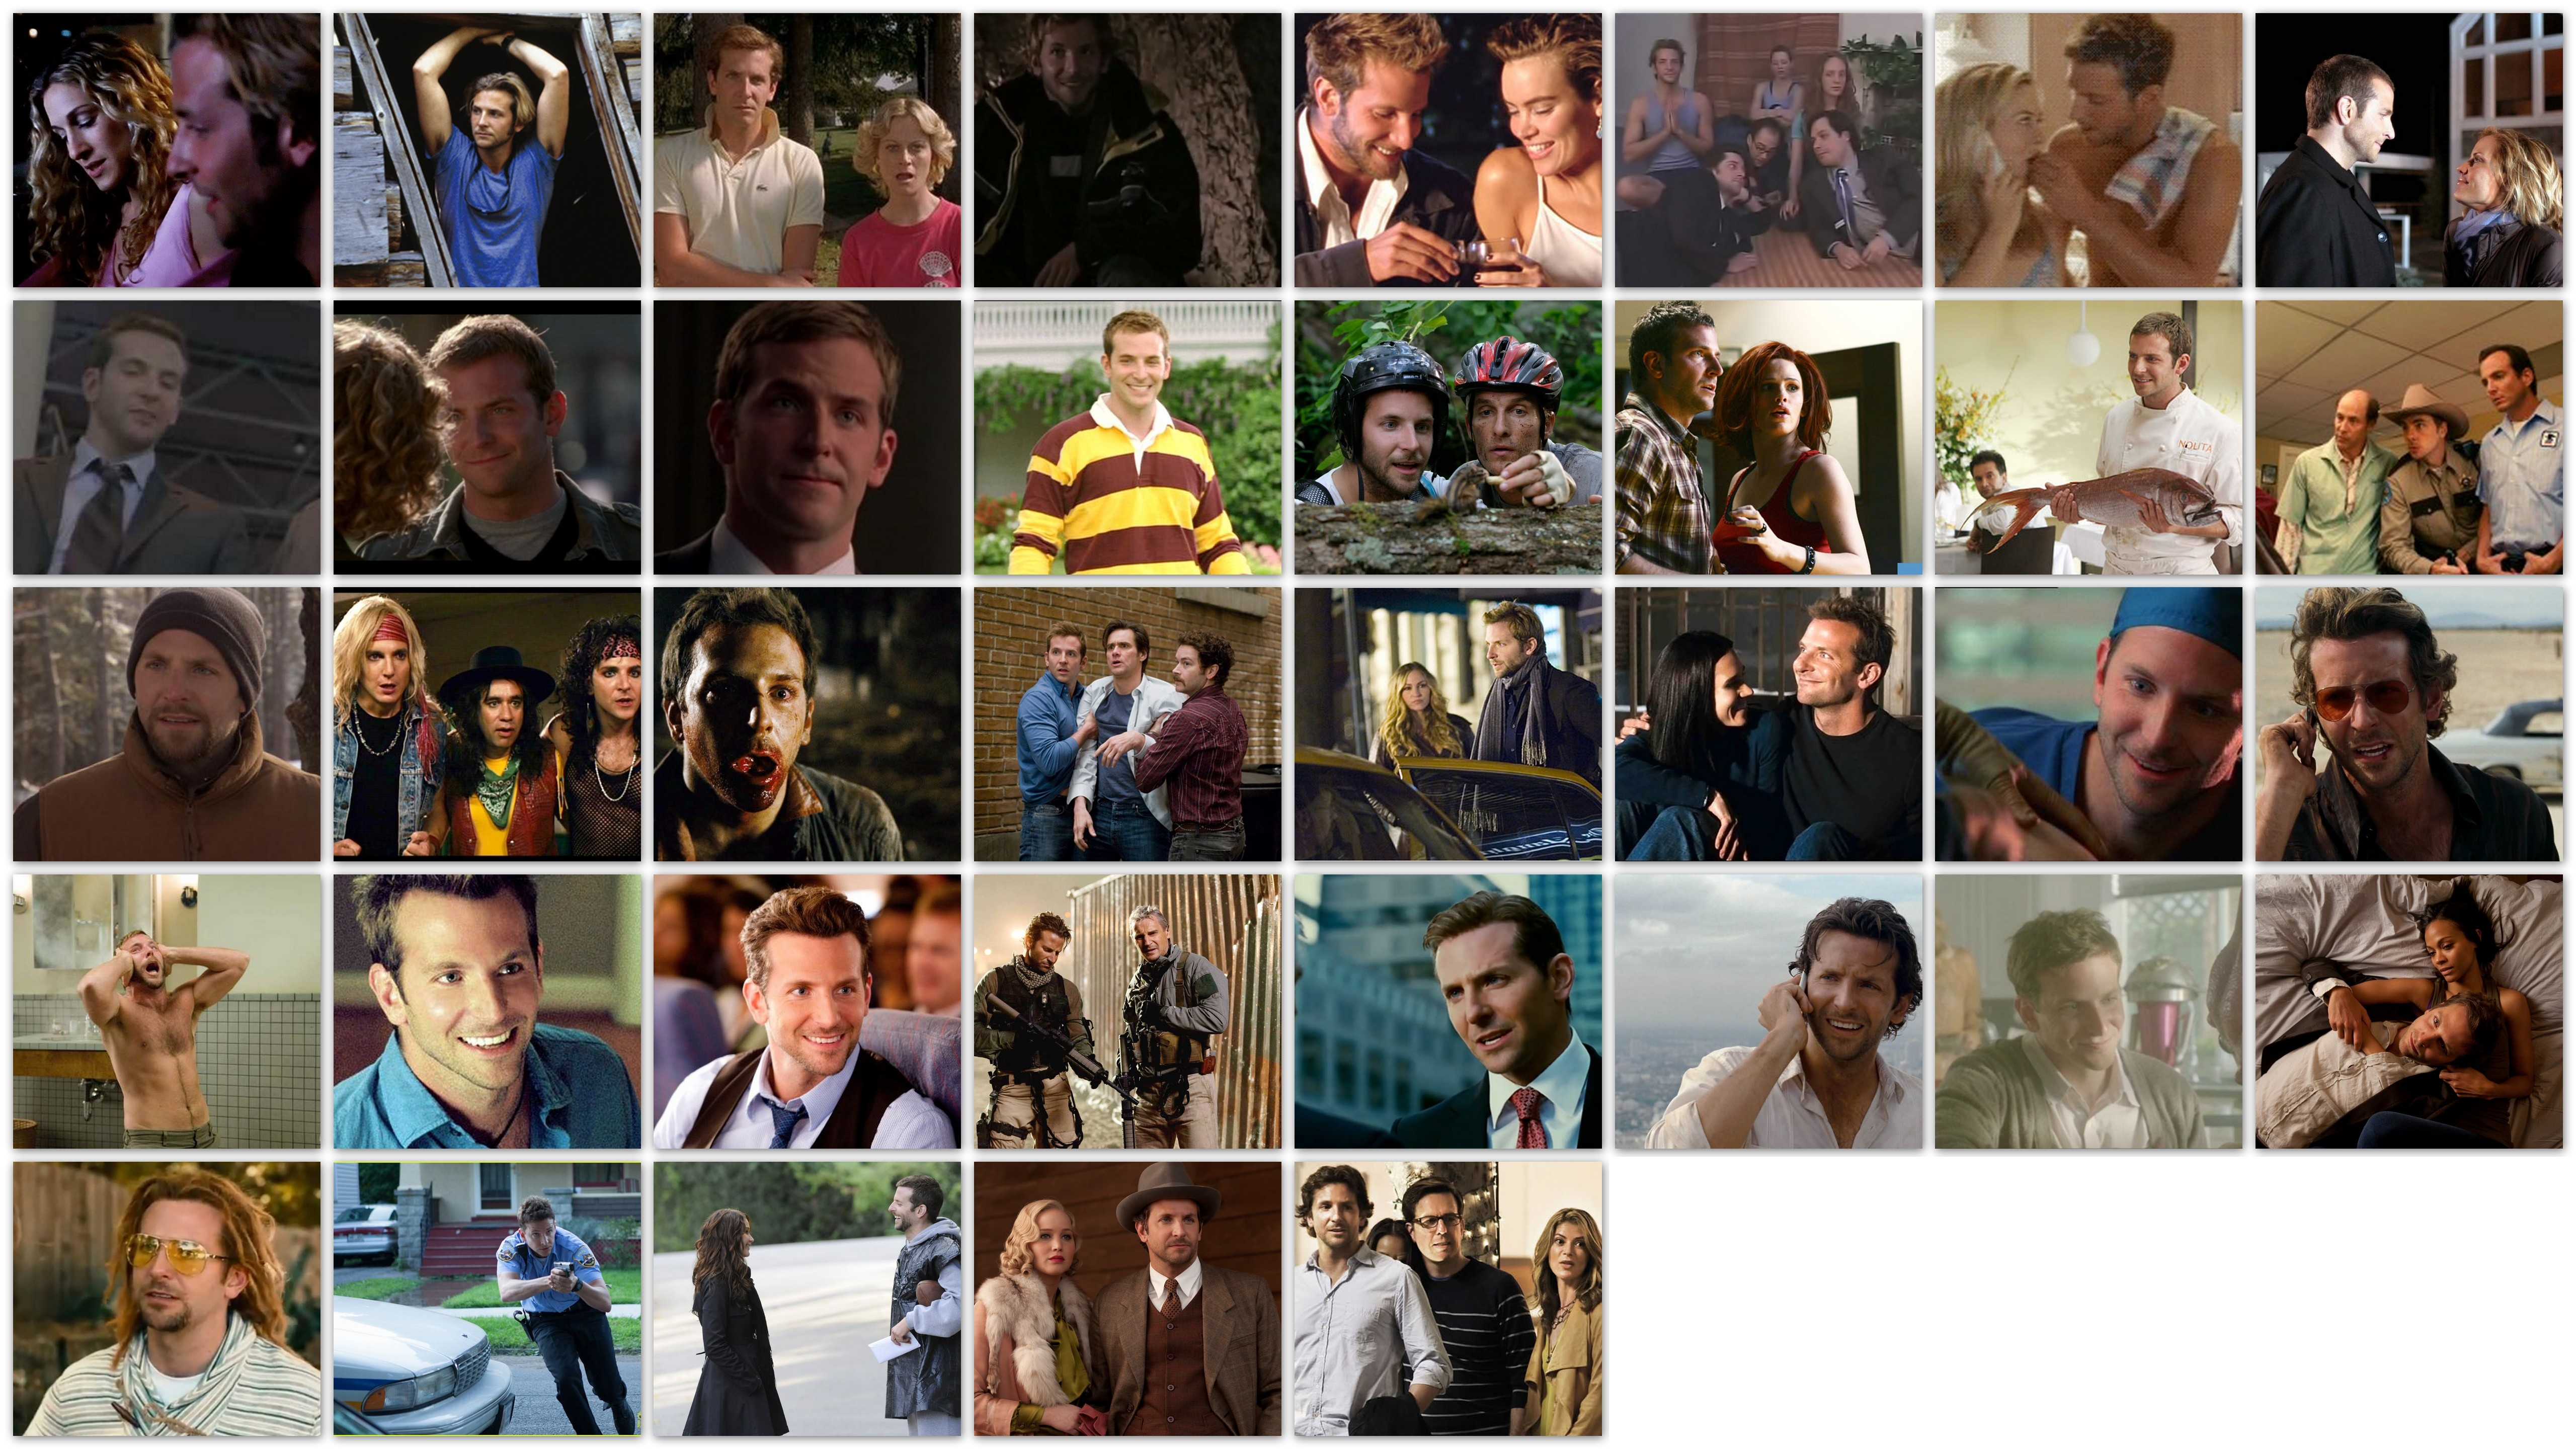 Overview of the roles of Bradley Cooper movies